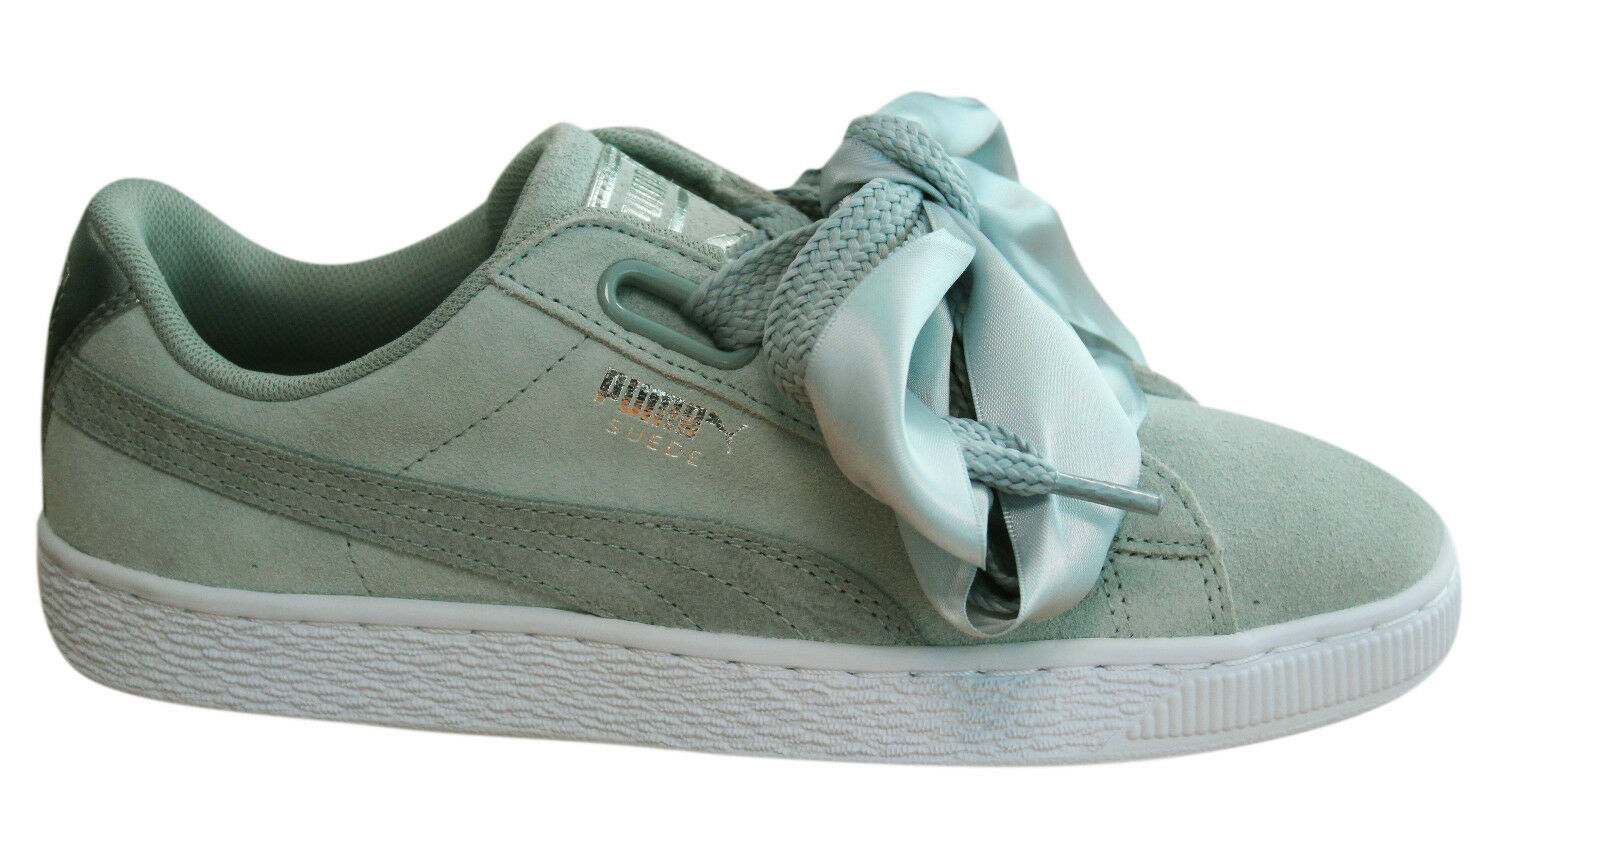 cff3d62c0dd27e Puma Suede Heart Safari Womens Trainers Lace Up Grey Leather 364083 ...